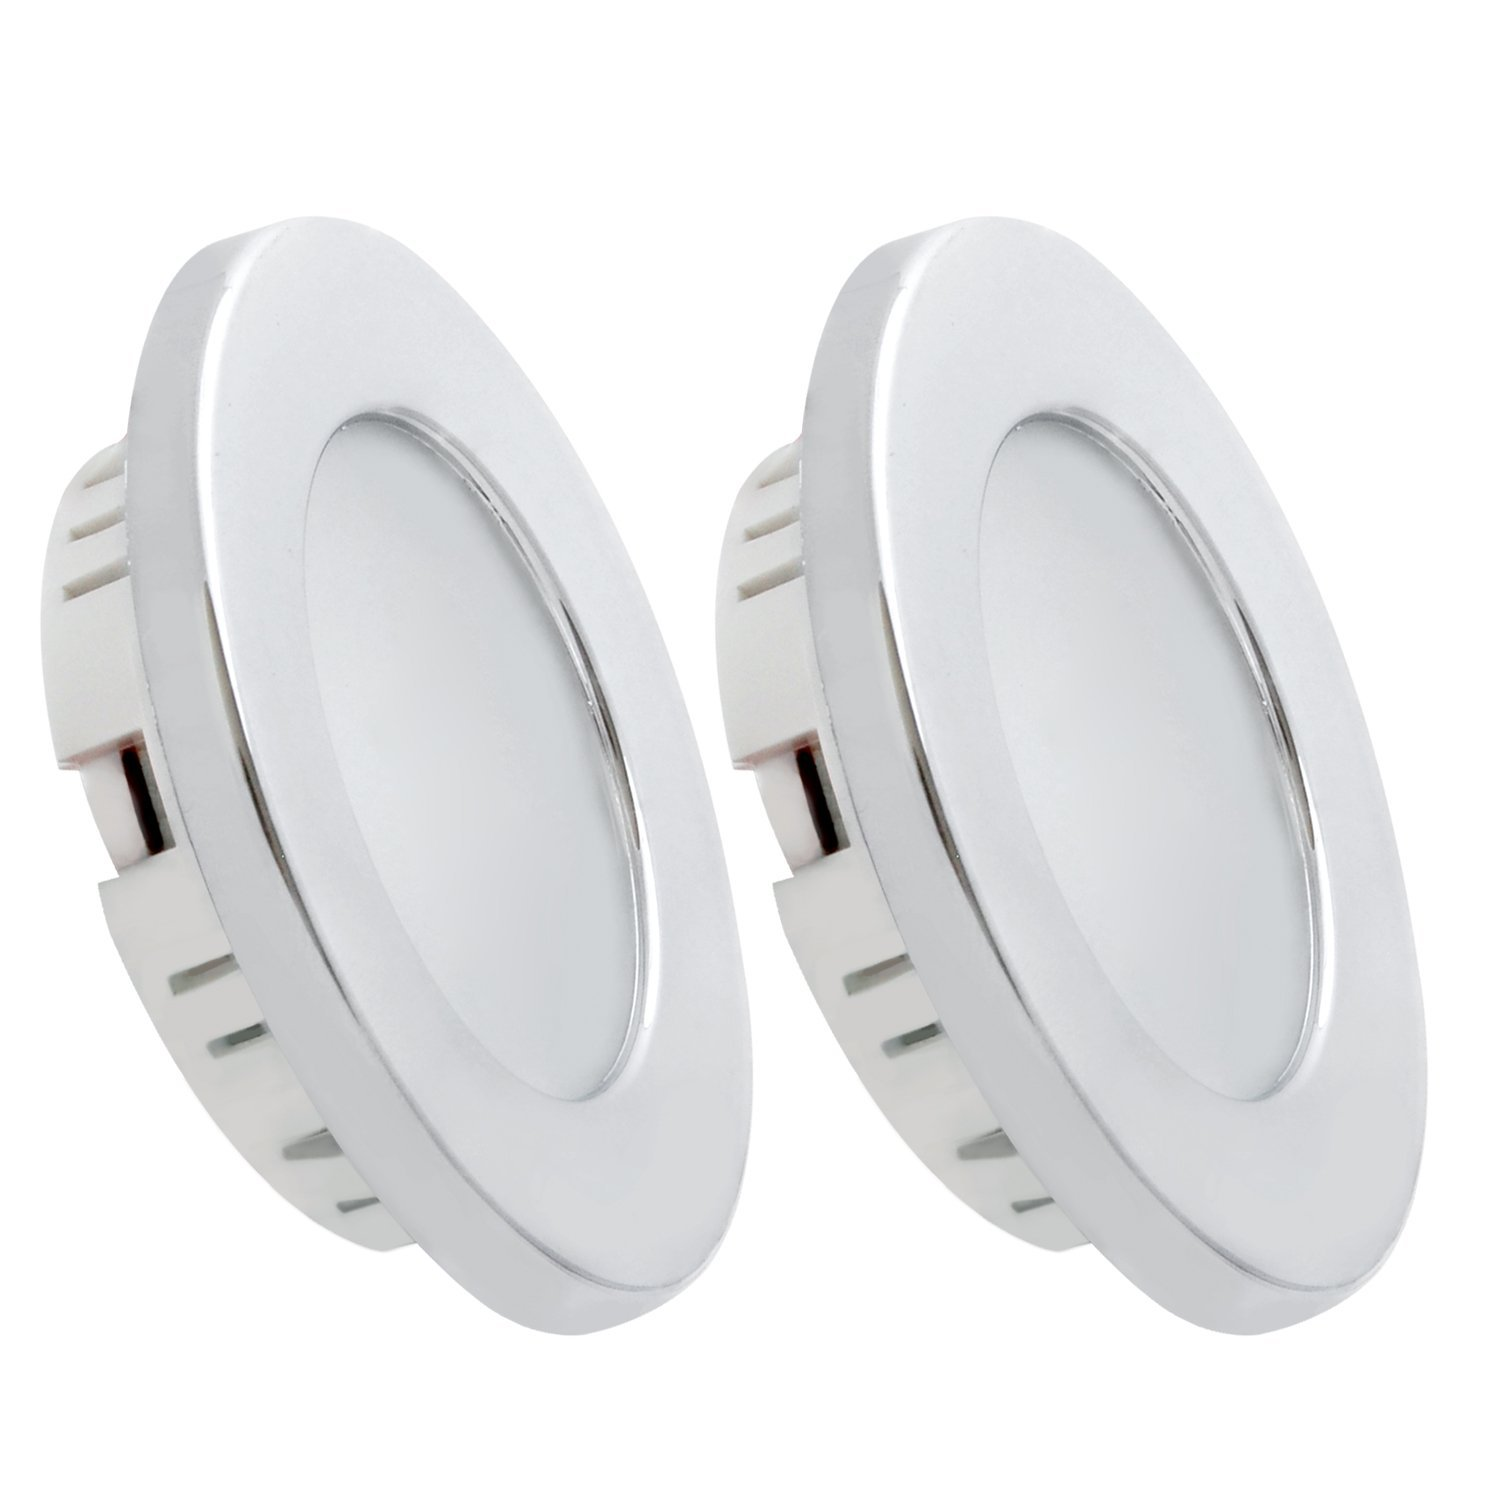 tento 12v RV Lights Fixtures Natural White 4500k Pack of 2 12-Volt Reading Light for RV Accessories Marine Boat Cruises Cabin